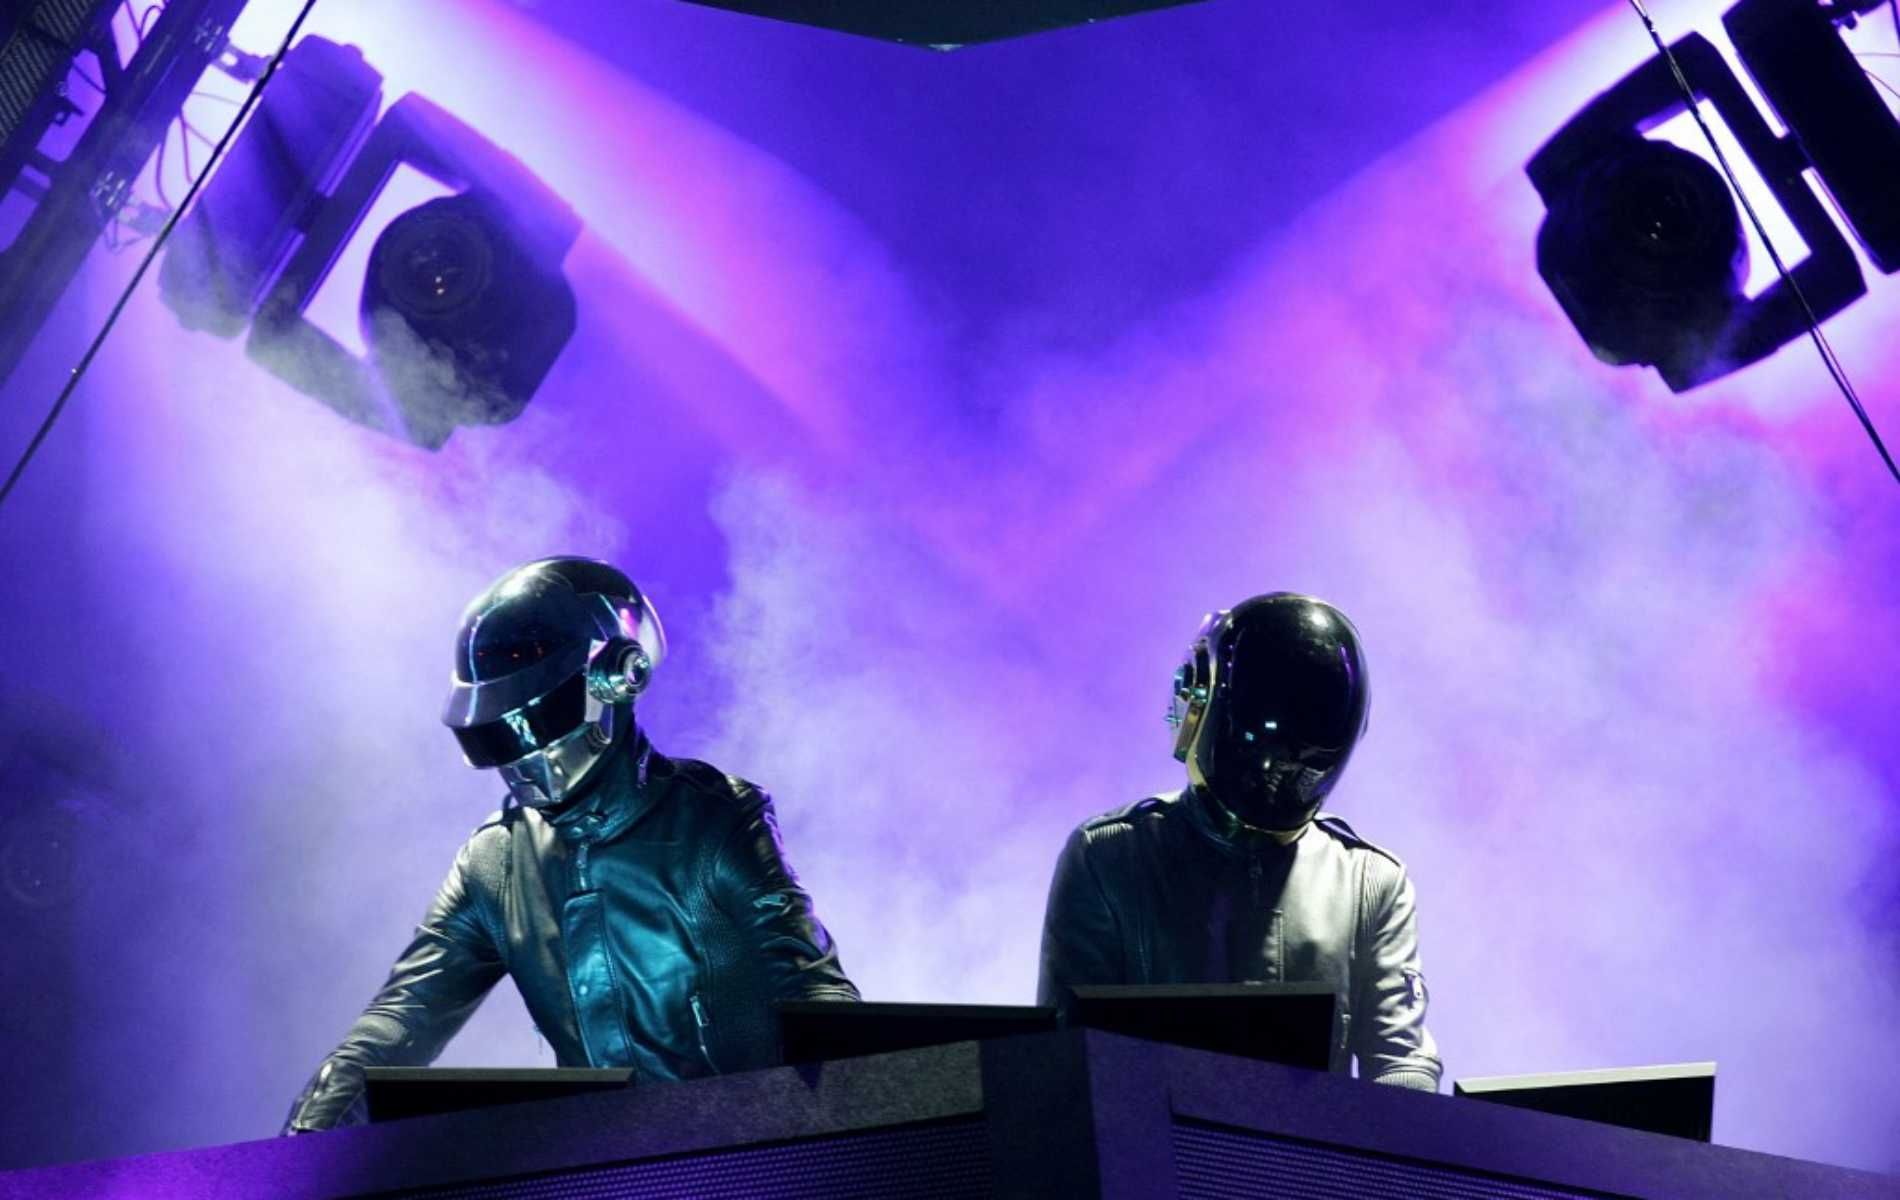 """(FILES) In this file photo taken on April 29, 2006 Daft Punk performs at the Coachella Music Fesival in Indio, California. - French electronic music stars Daft Punk have split up, their publicist confirmed on February 22, 2021, ending one of the era's defining dancefloor acts. The duo released a video titled """"Epilogue"""" in which one of the robot duo is blown up in the desert, followed by a cutaway reading """"1993-2021"""". (Photo by Karl Walter / GETTY IMAGES NORTH AMERICA / AFP)"""